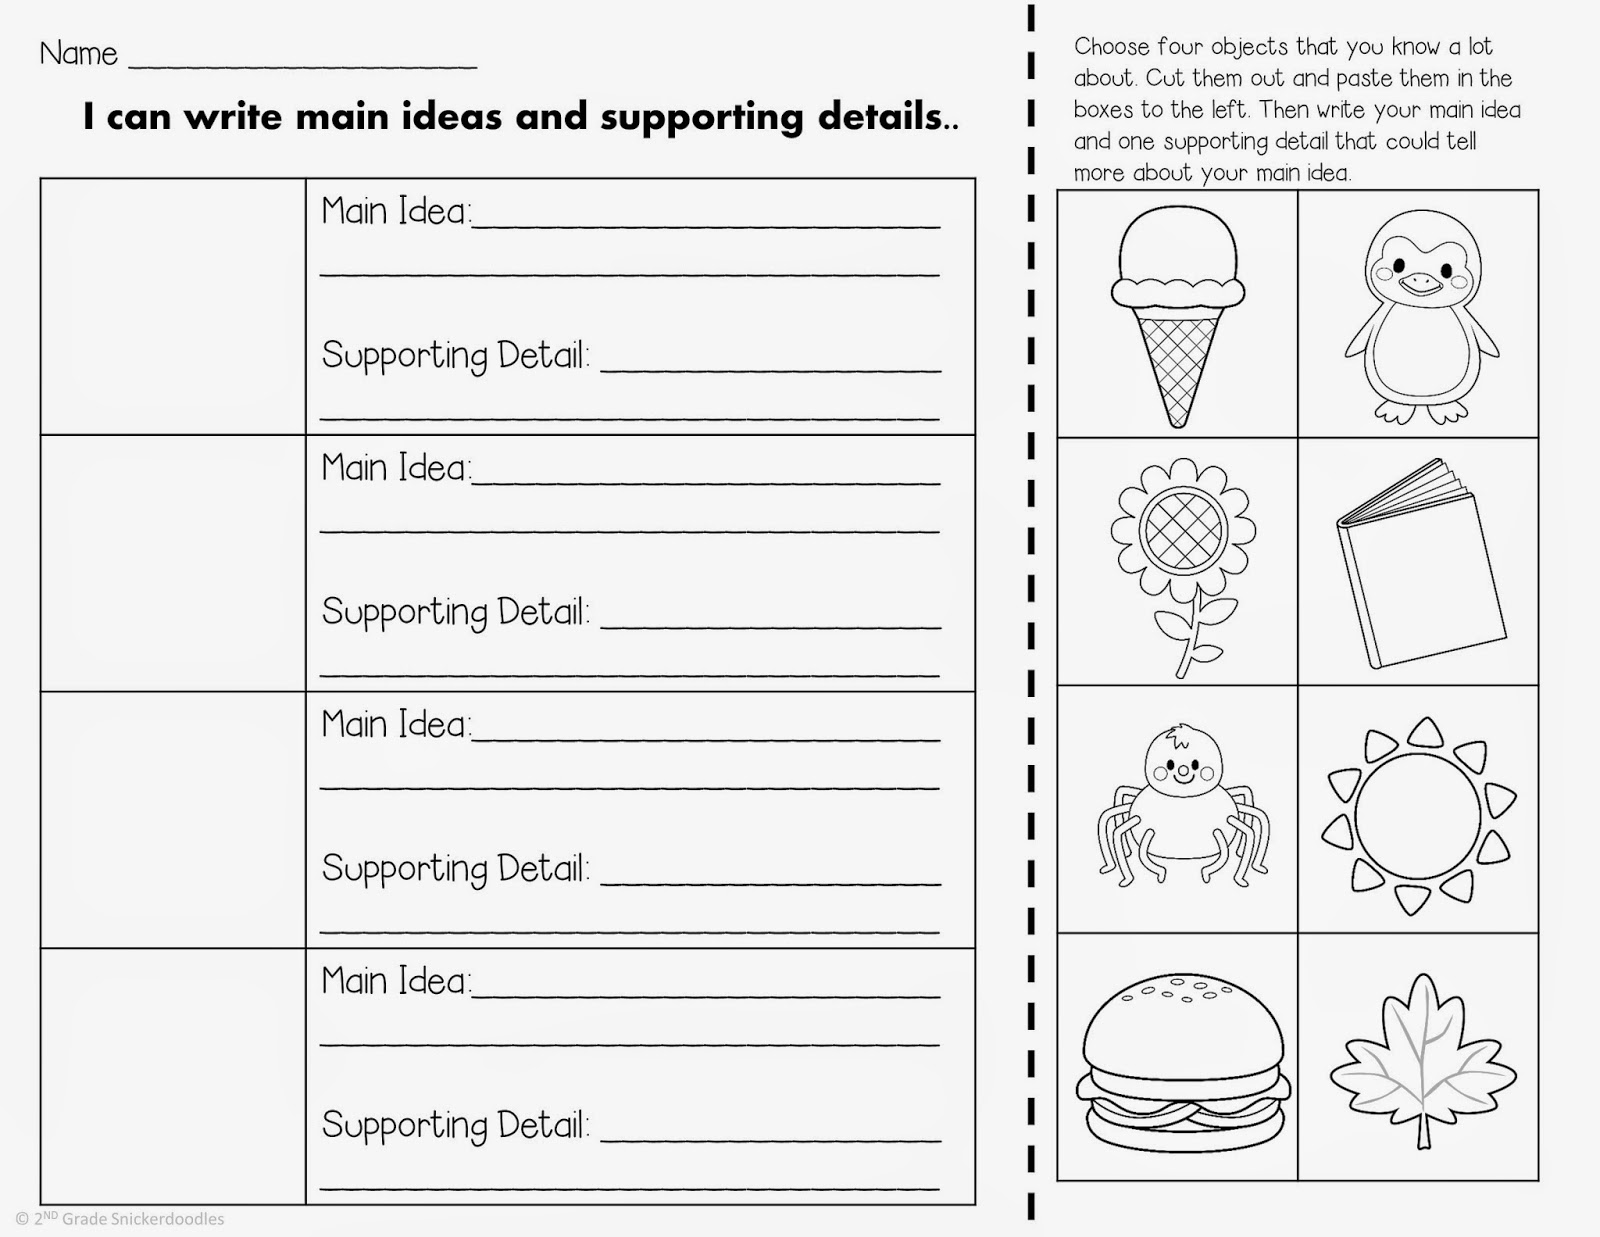 2nd Grade Snickerdoodles Main Idea And Supporting Details